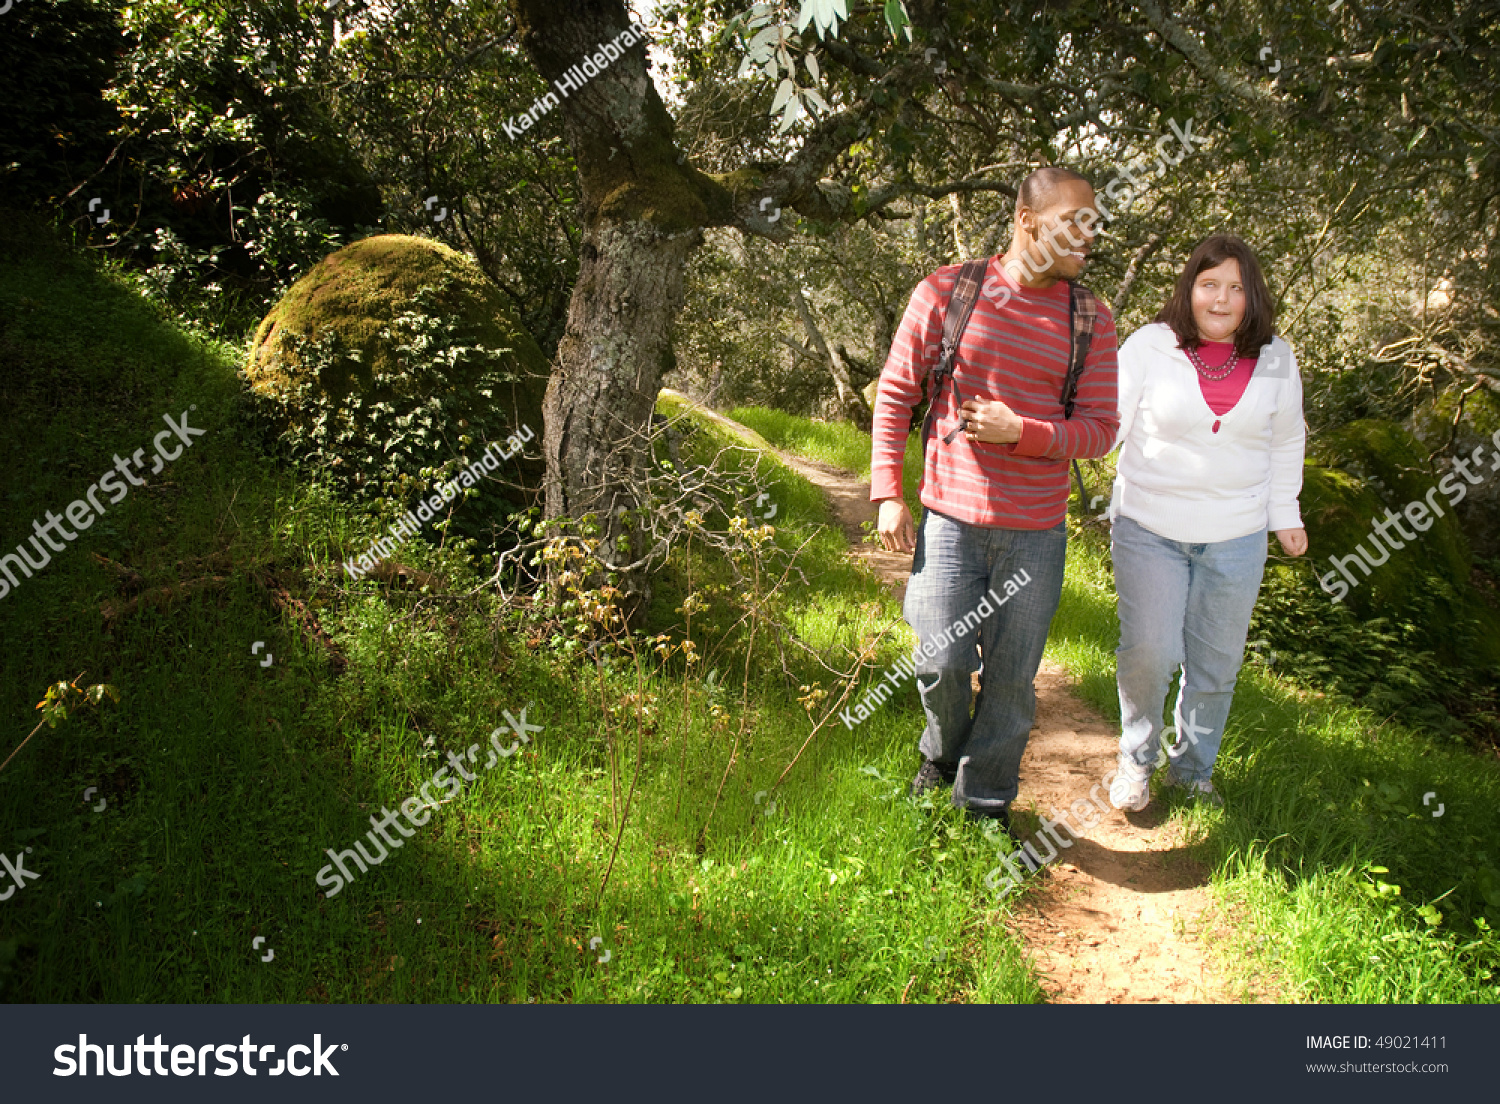 Photo of a young man walking with his visually impaired friend on a forest path using the sighted guide techniques. Image courtesy: Google